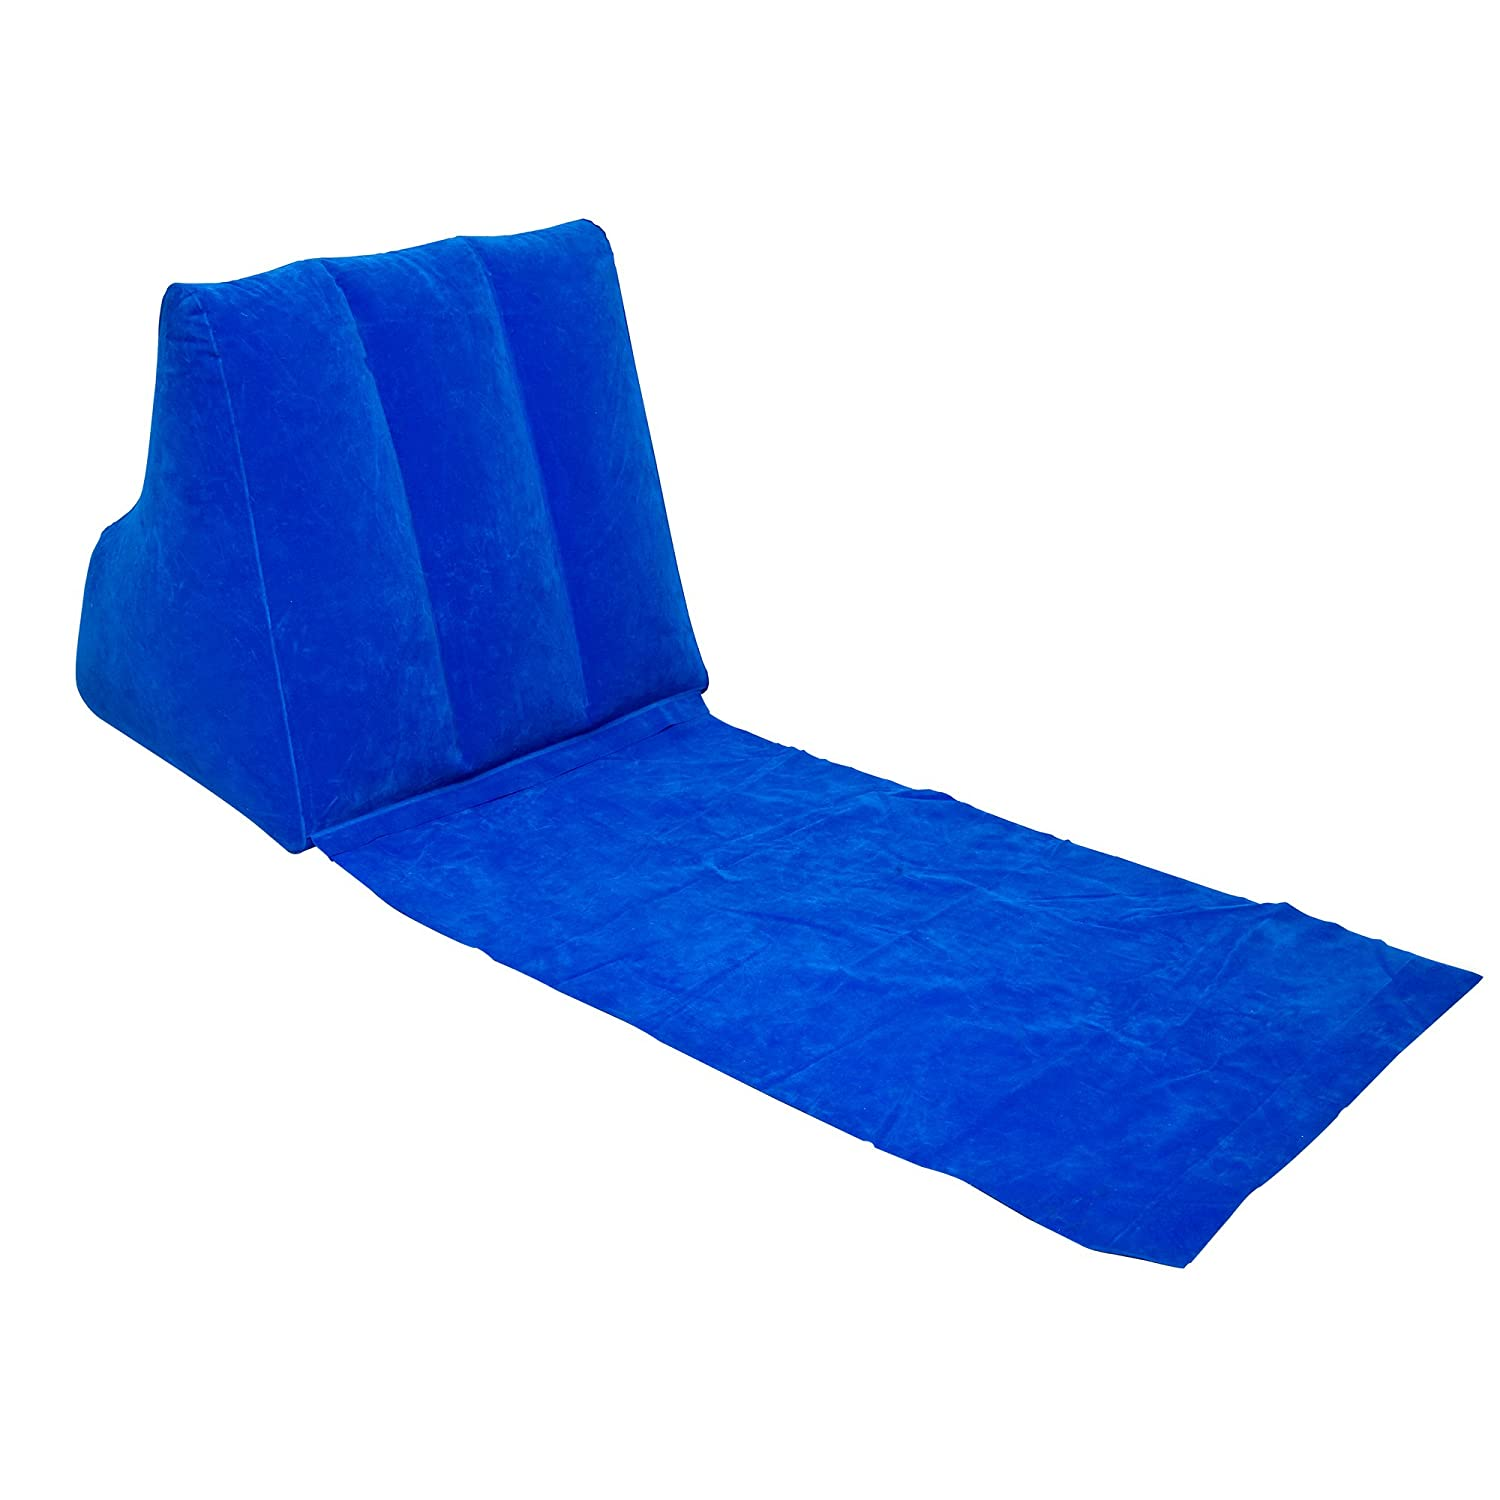 Wicked Wedge gonflable Plage Festival Camping Chaise